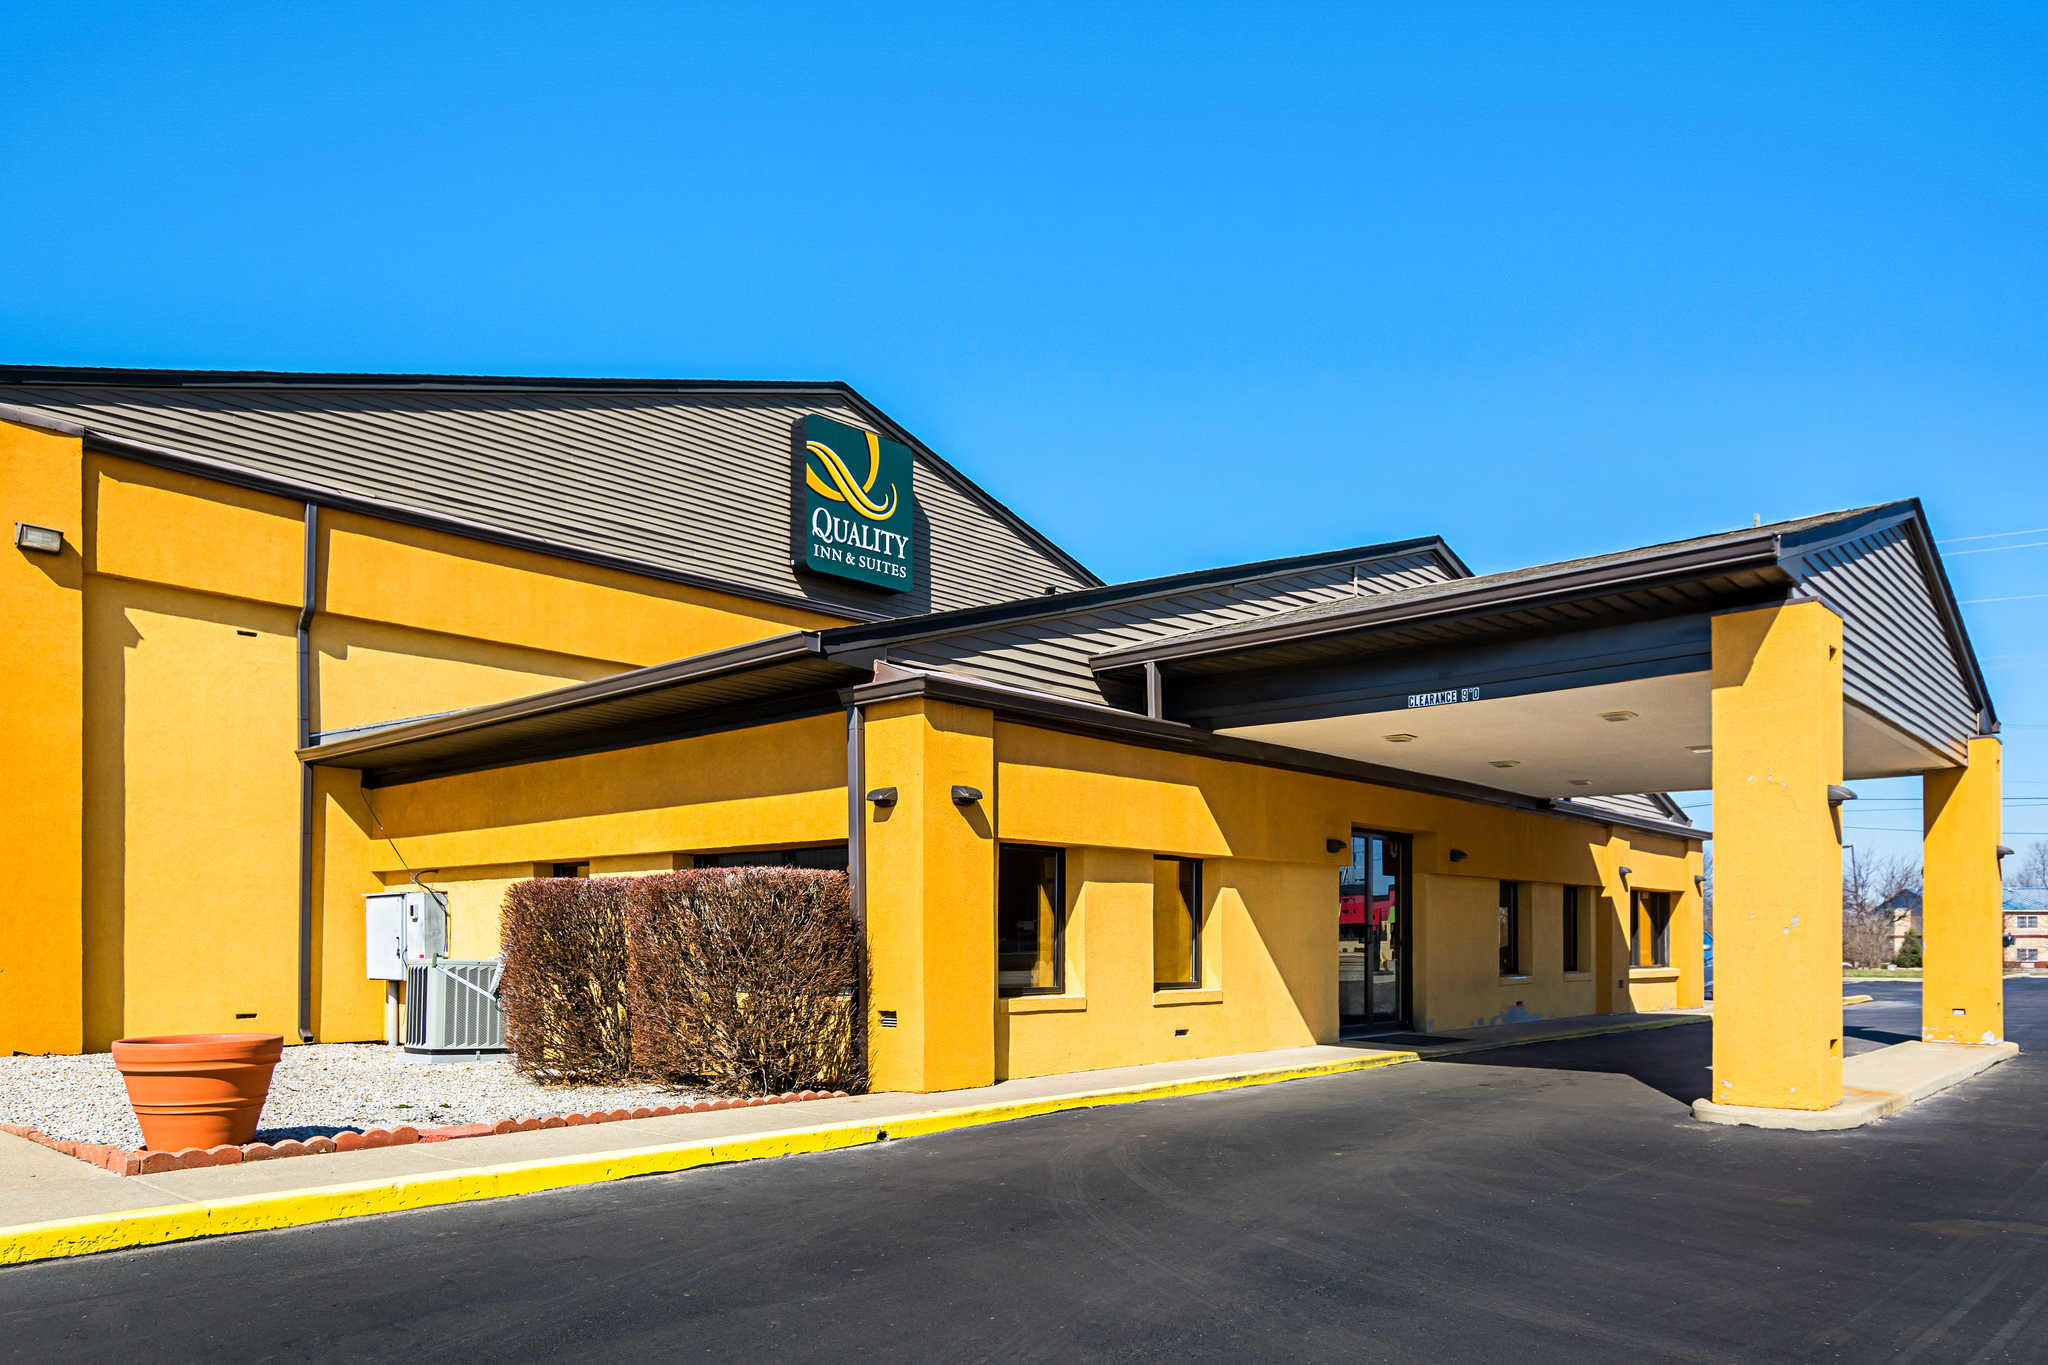 Quality Inn & Suites Greensburg I-74 image 2